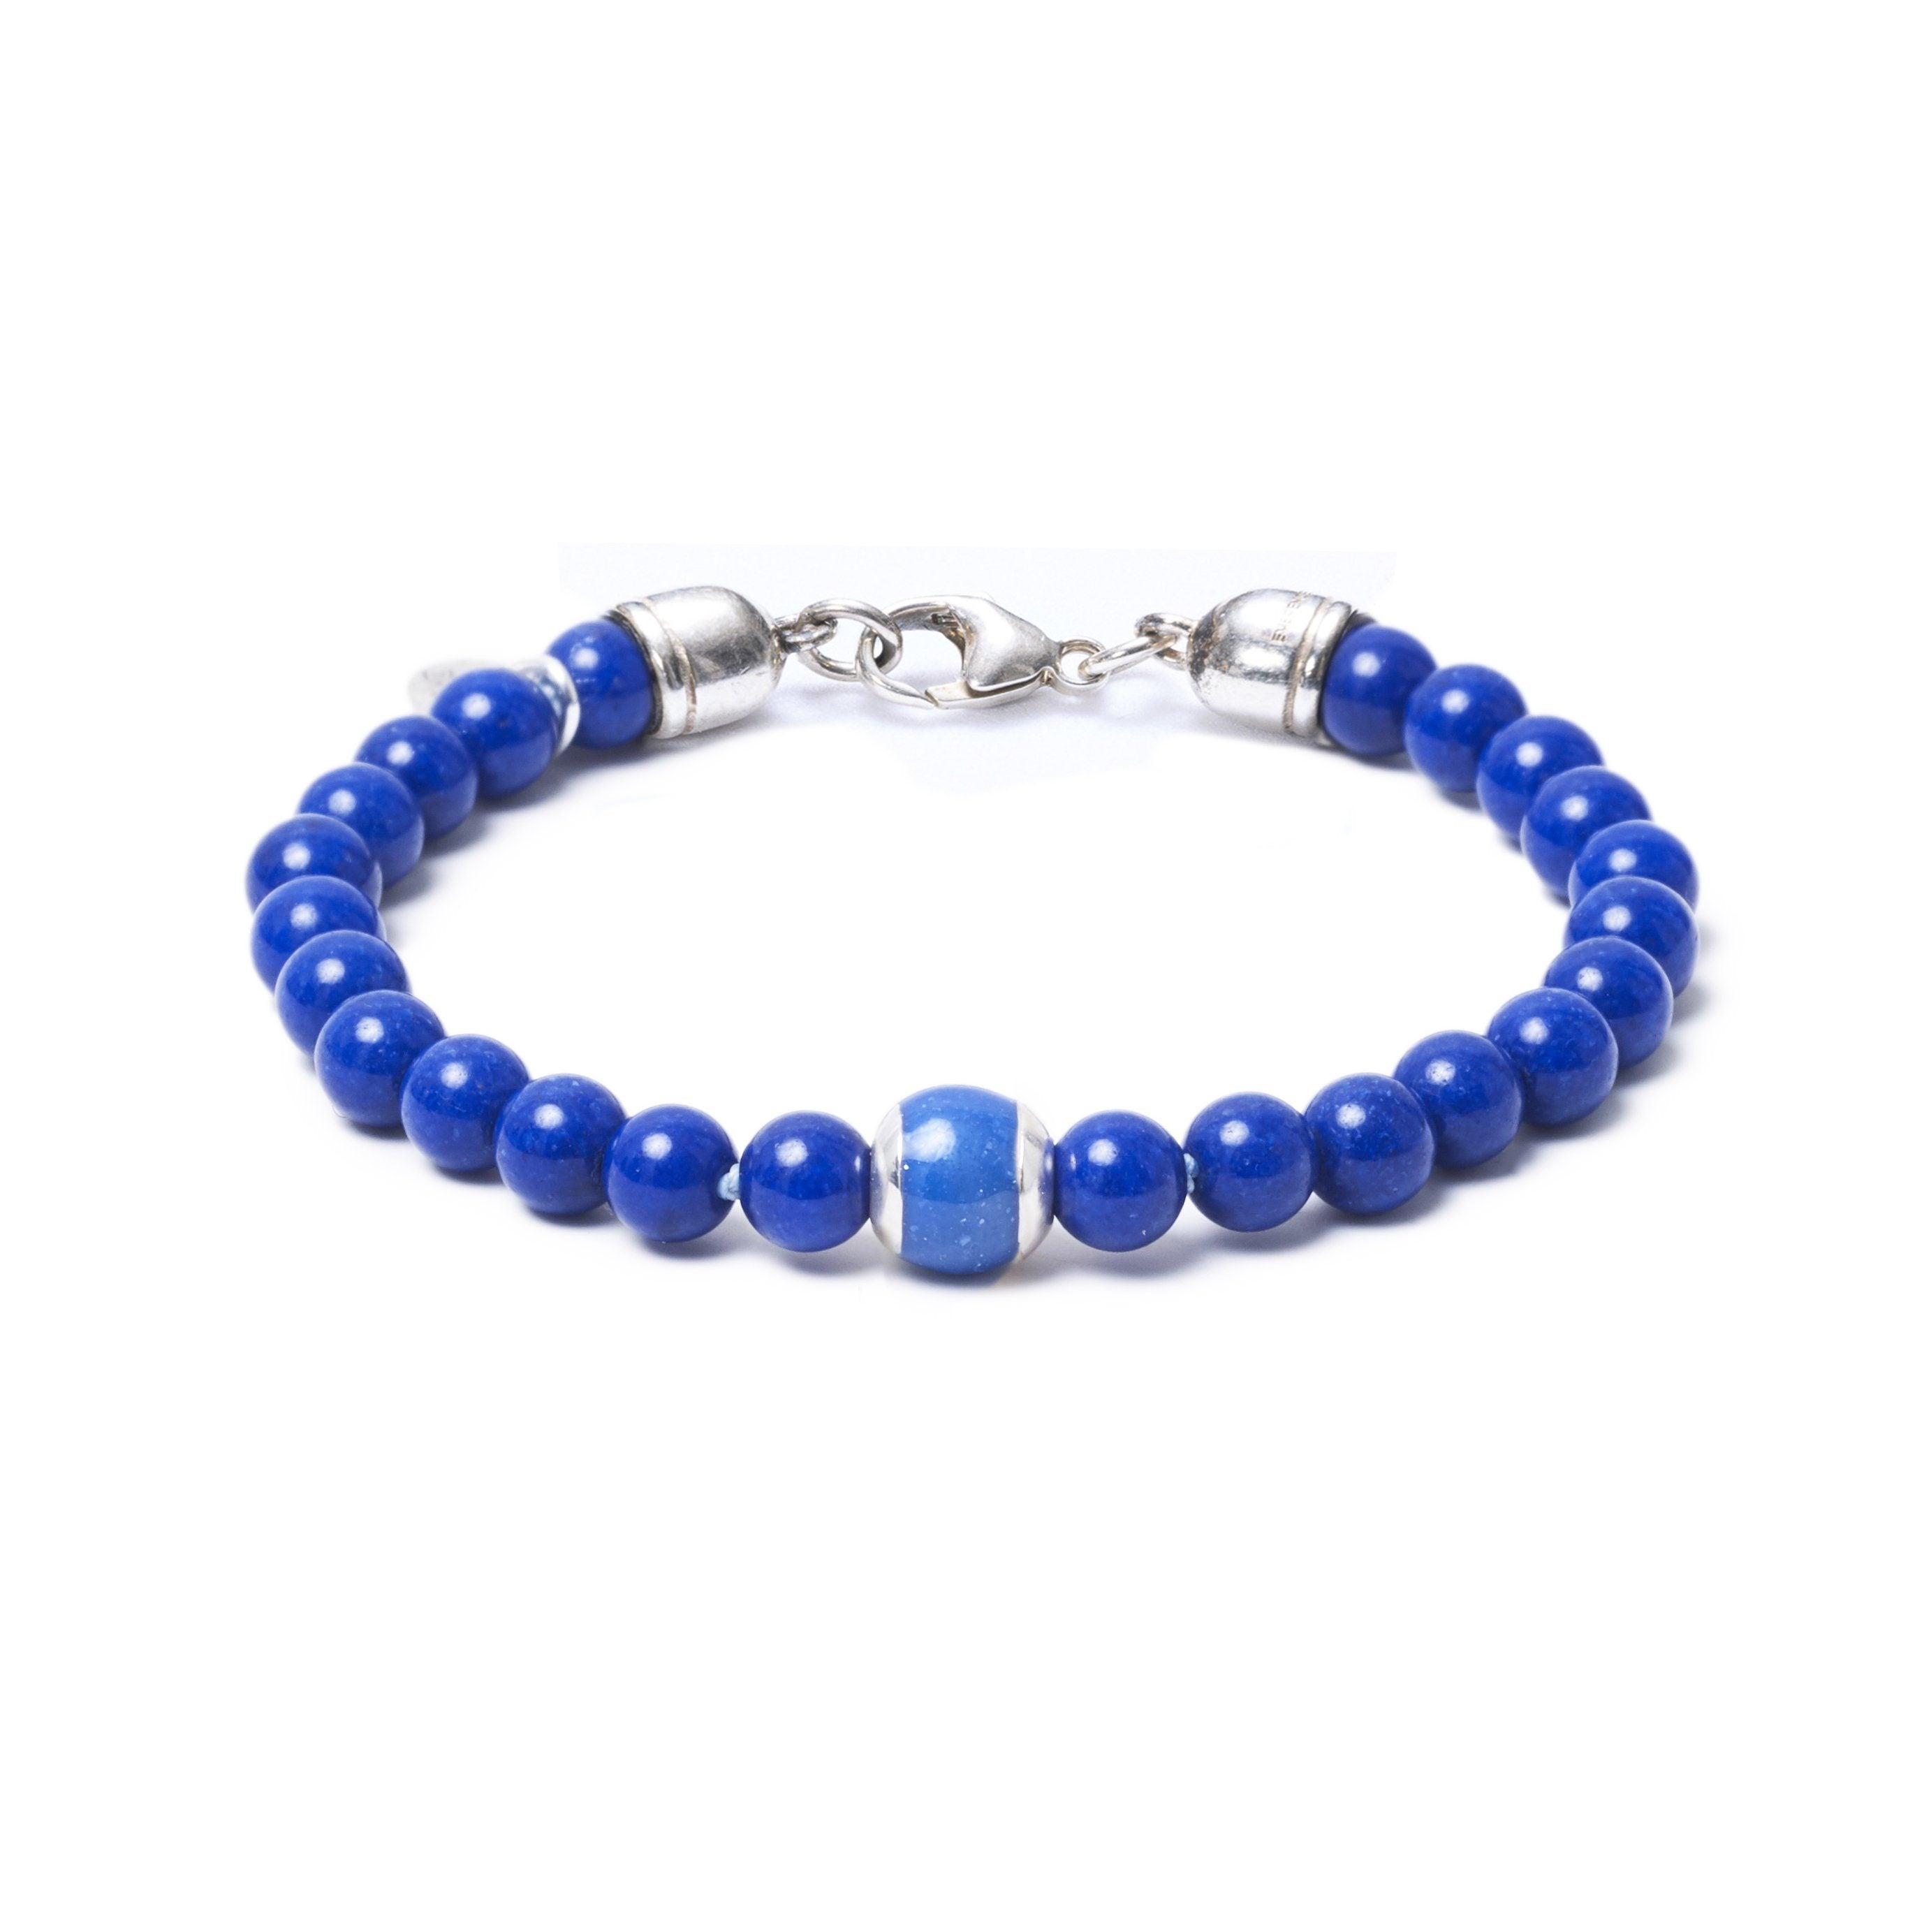 Lapis Lazuli, One Everence Bead everence.life Blue Lobster Claw 7